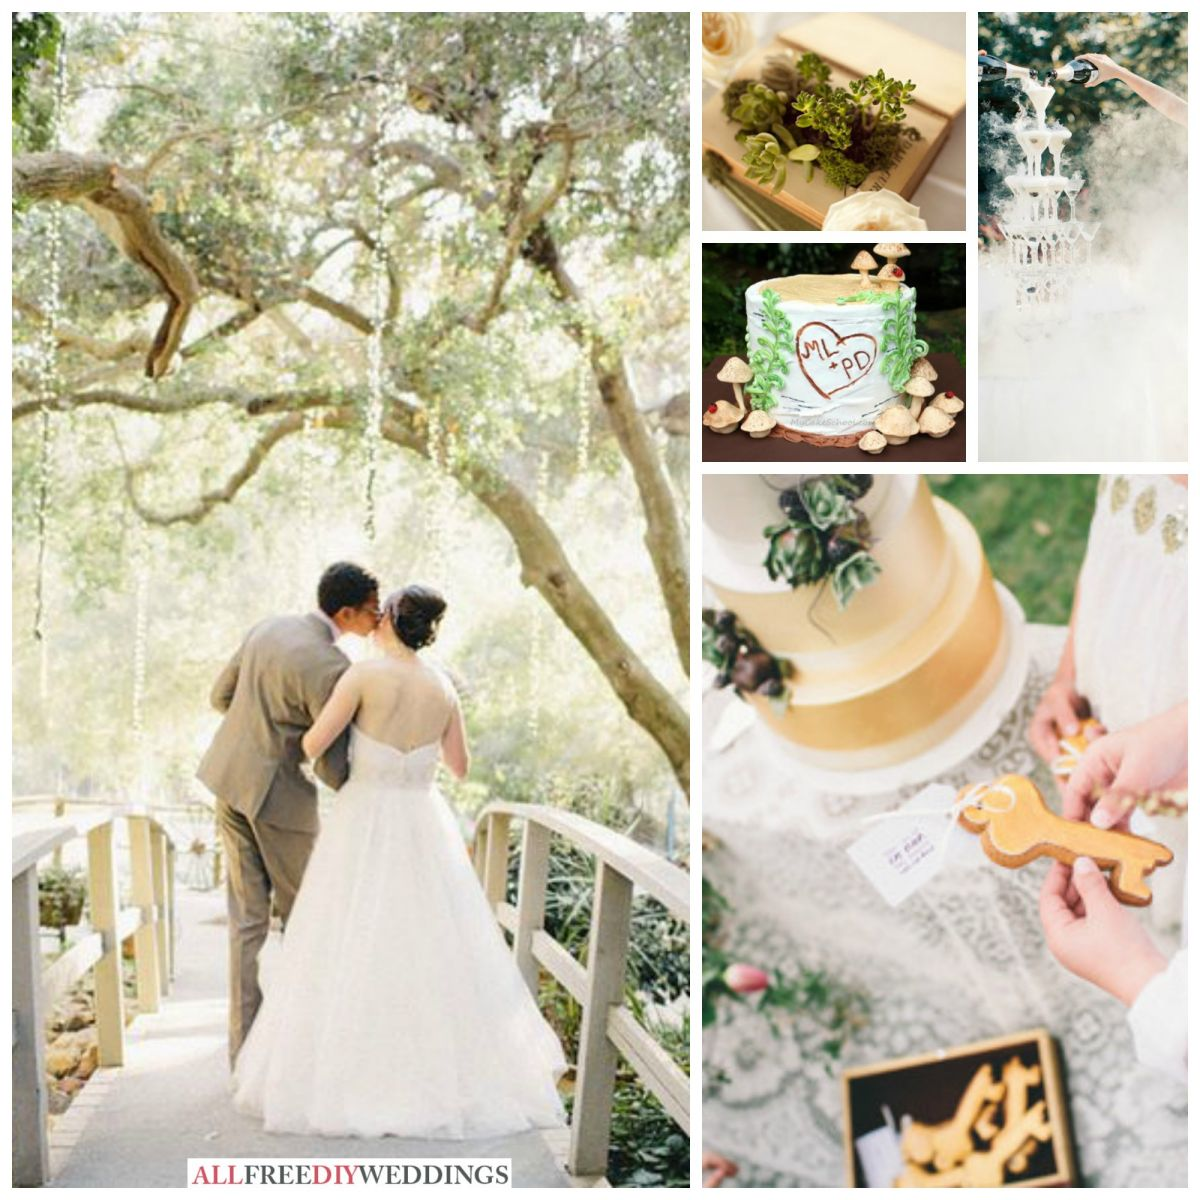 fairy tail theme wedding ideas - Wedding Decor Ideas